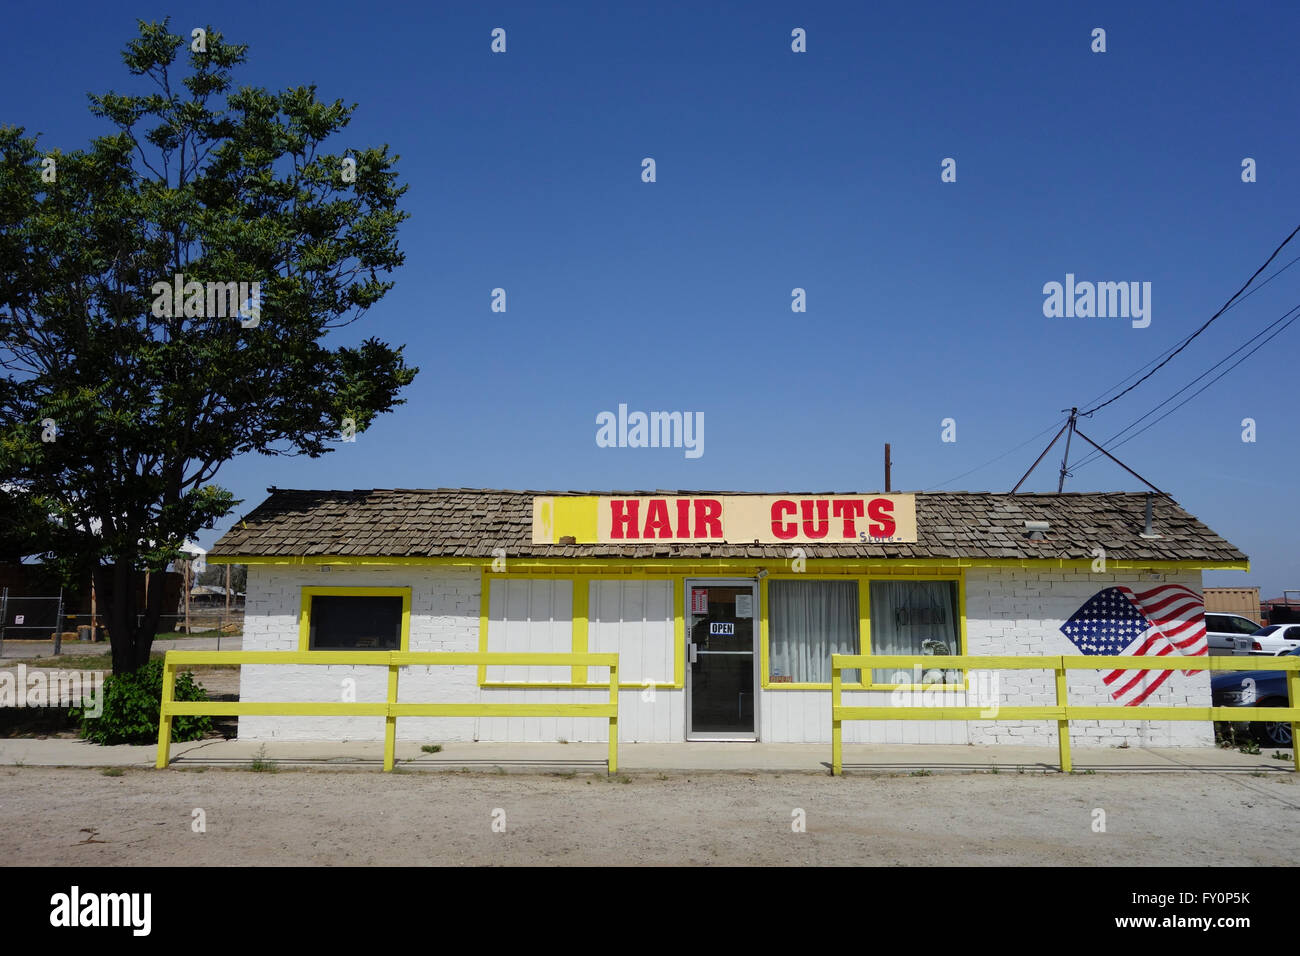 exterior of Hispanic hair salon in small town near Bakersfield Southern California USA - Stock Image